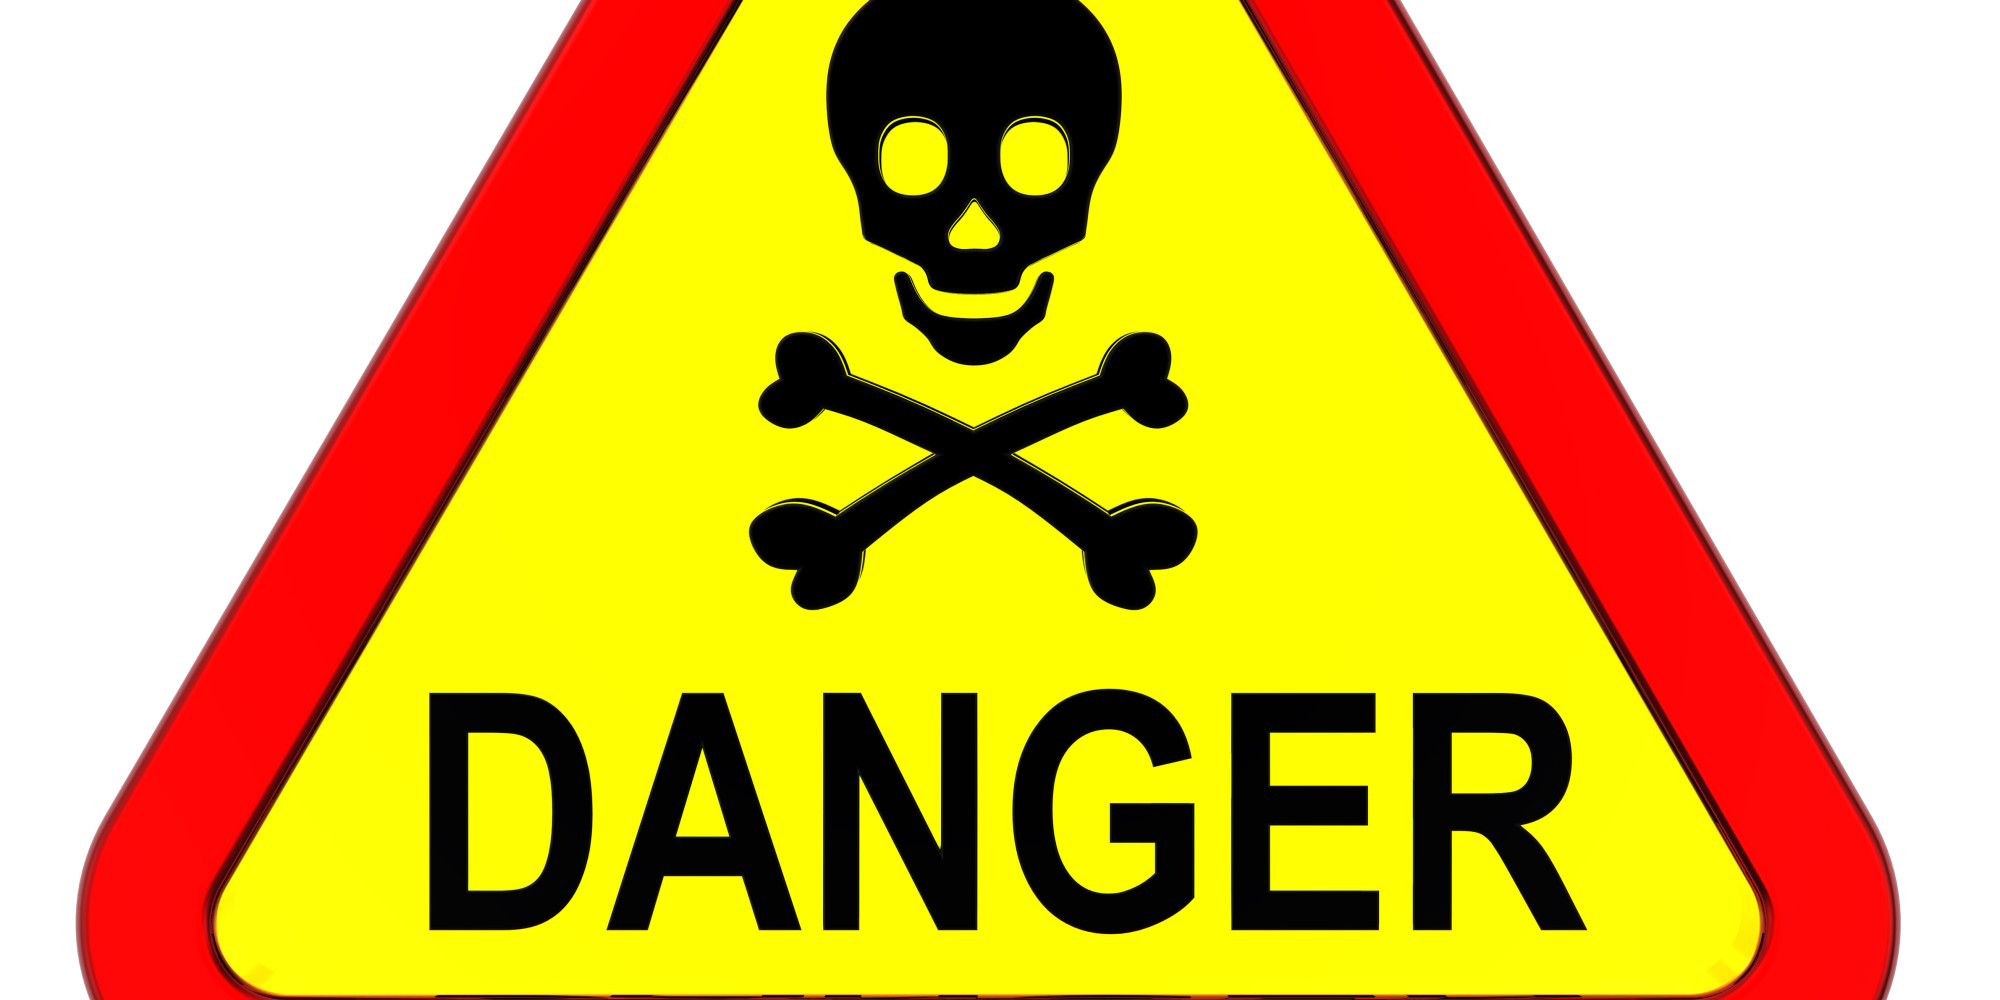 Caution clipart gambar. Warning rooting your galaxy